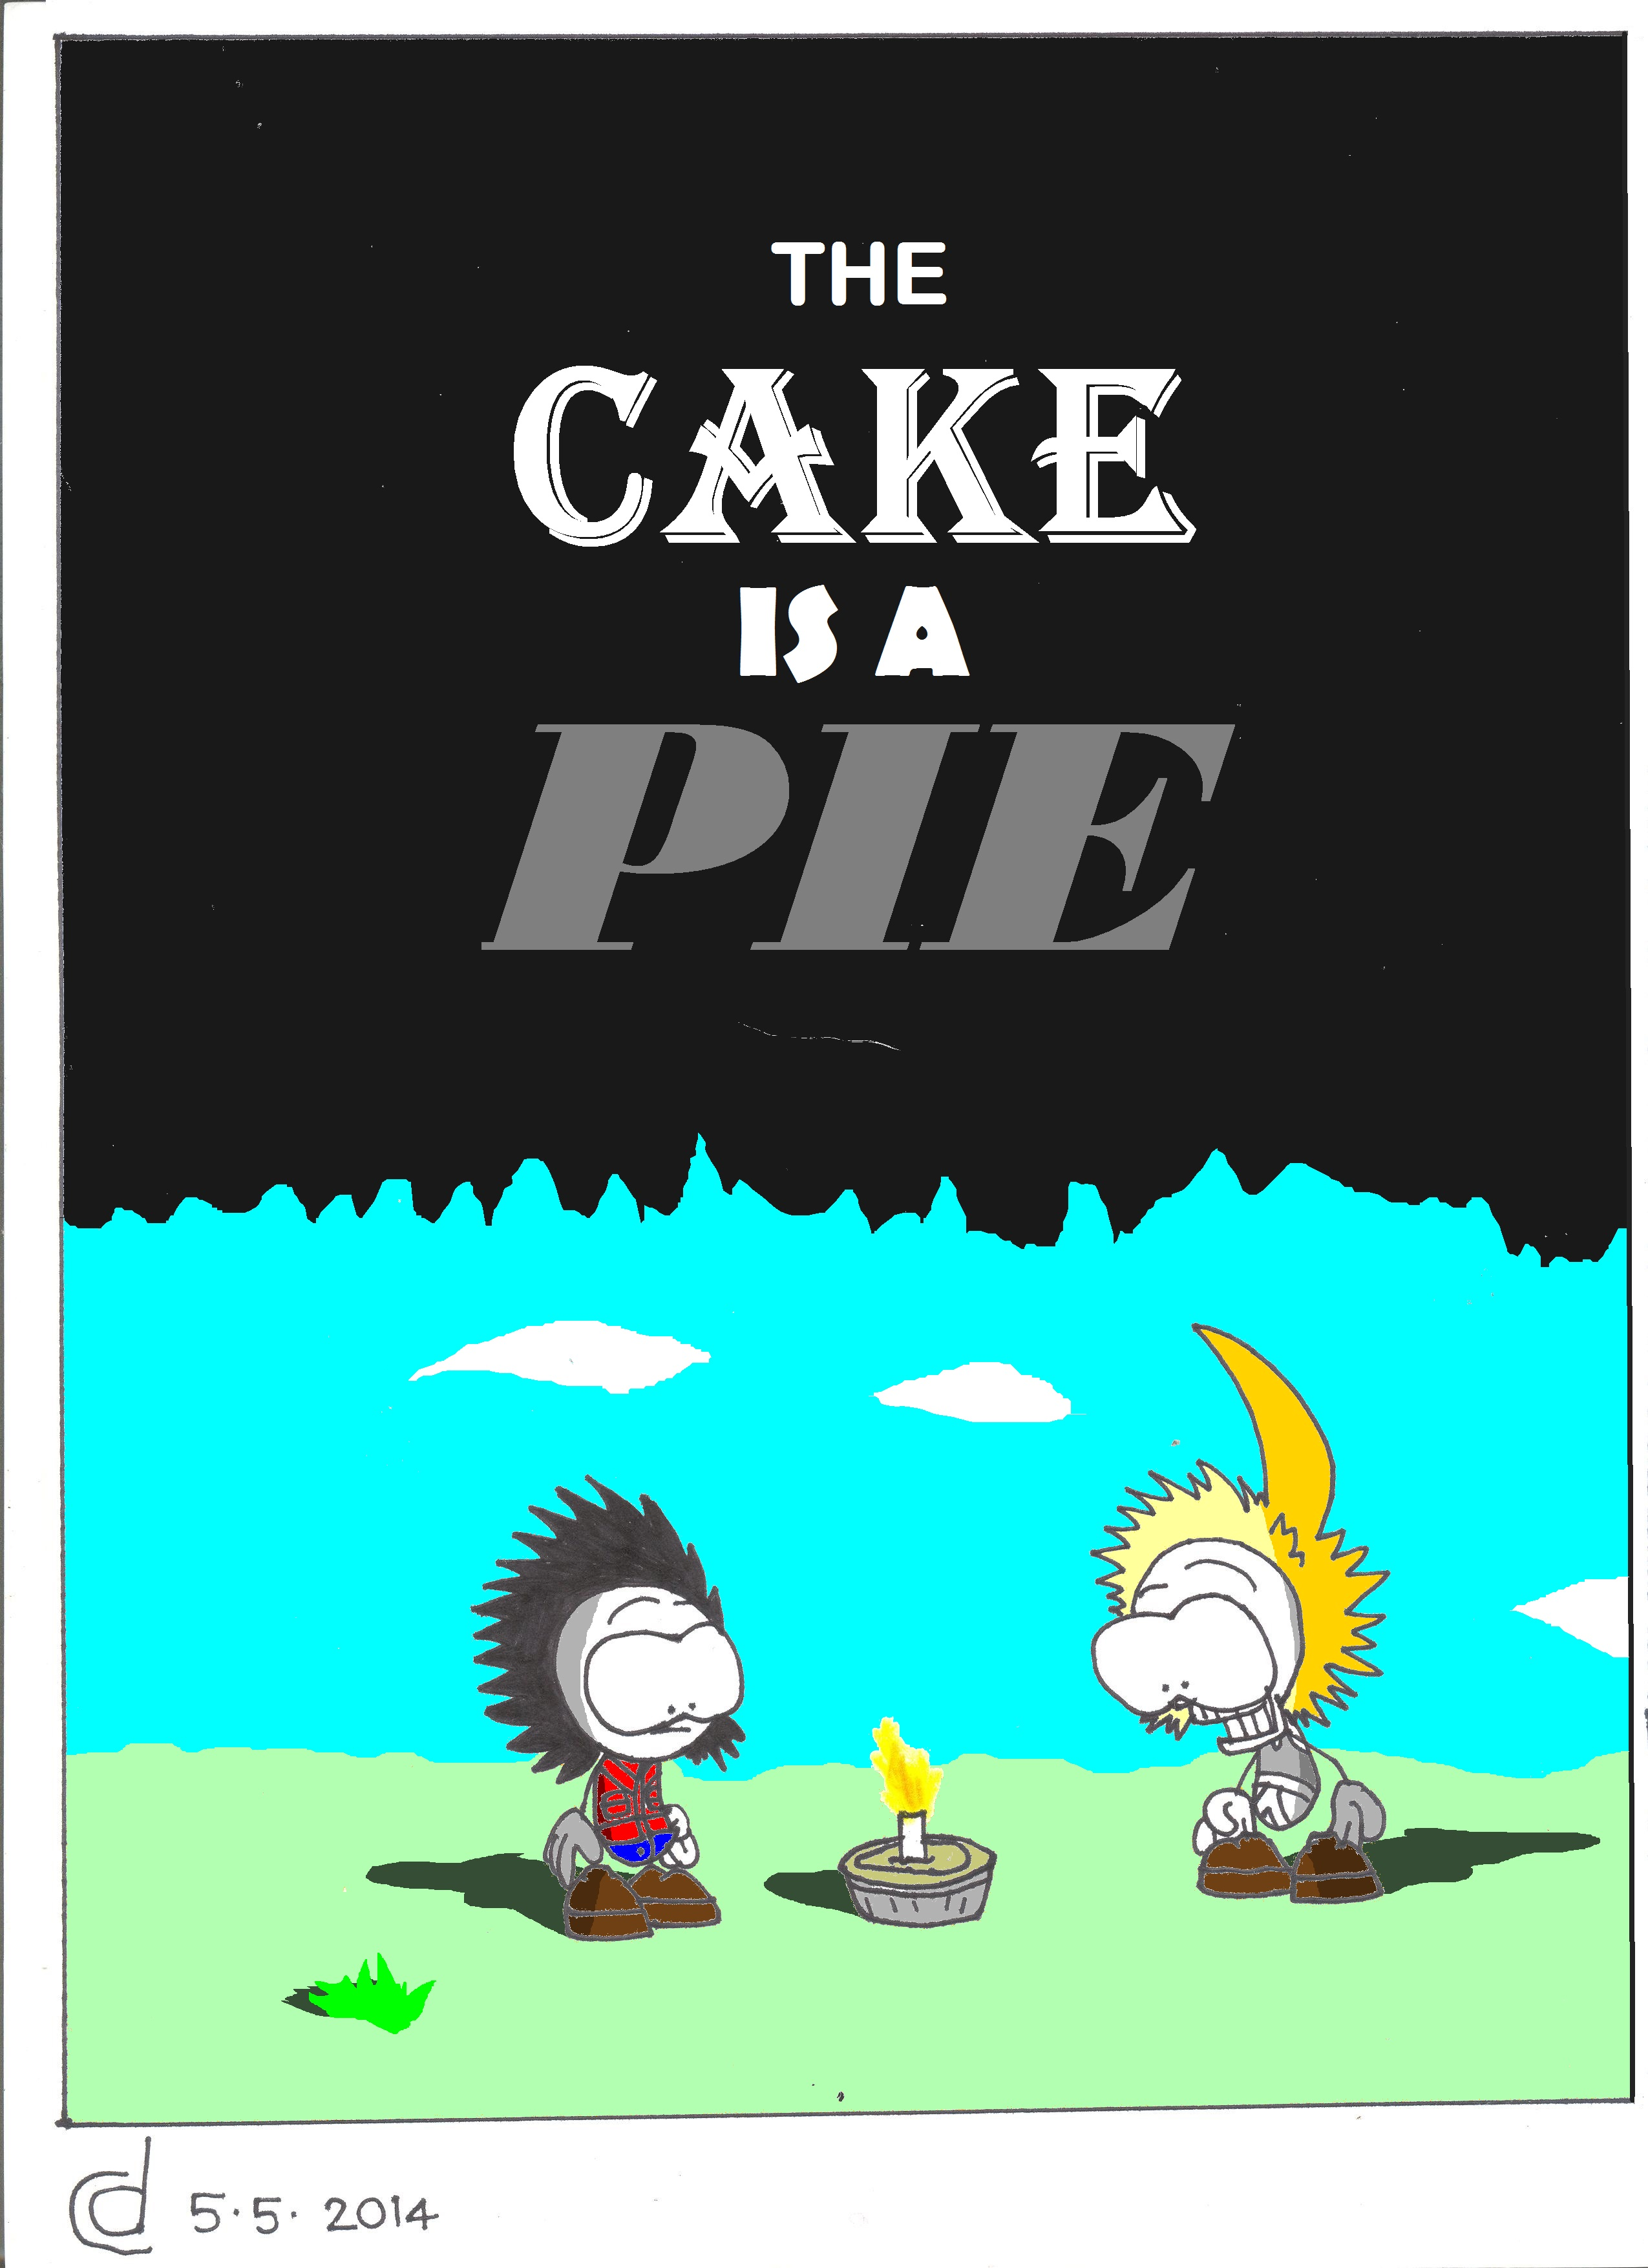 The Cake Is A Pie